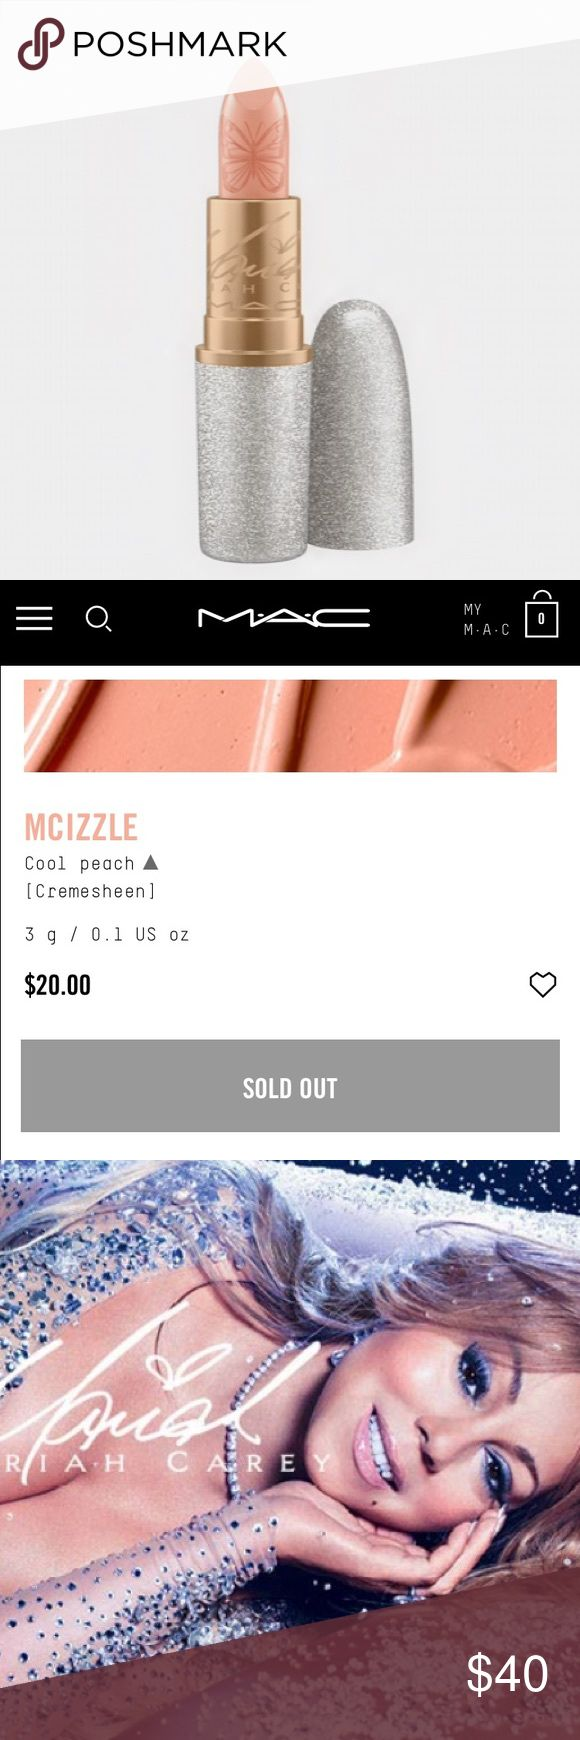 MAC x Mariah Carey Lipstick in Mcizzle Brand new in box lipstick. Purchased online direct from the MAC website. Sold out!! MAC Cosmetics Makeup Lipstick